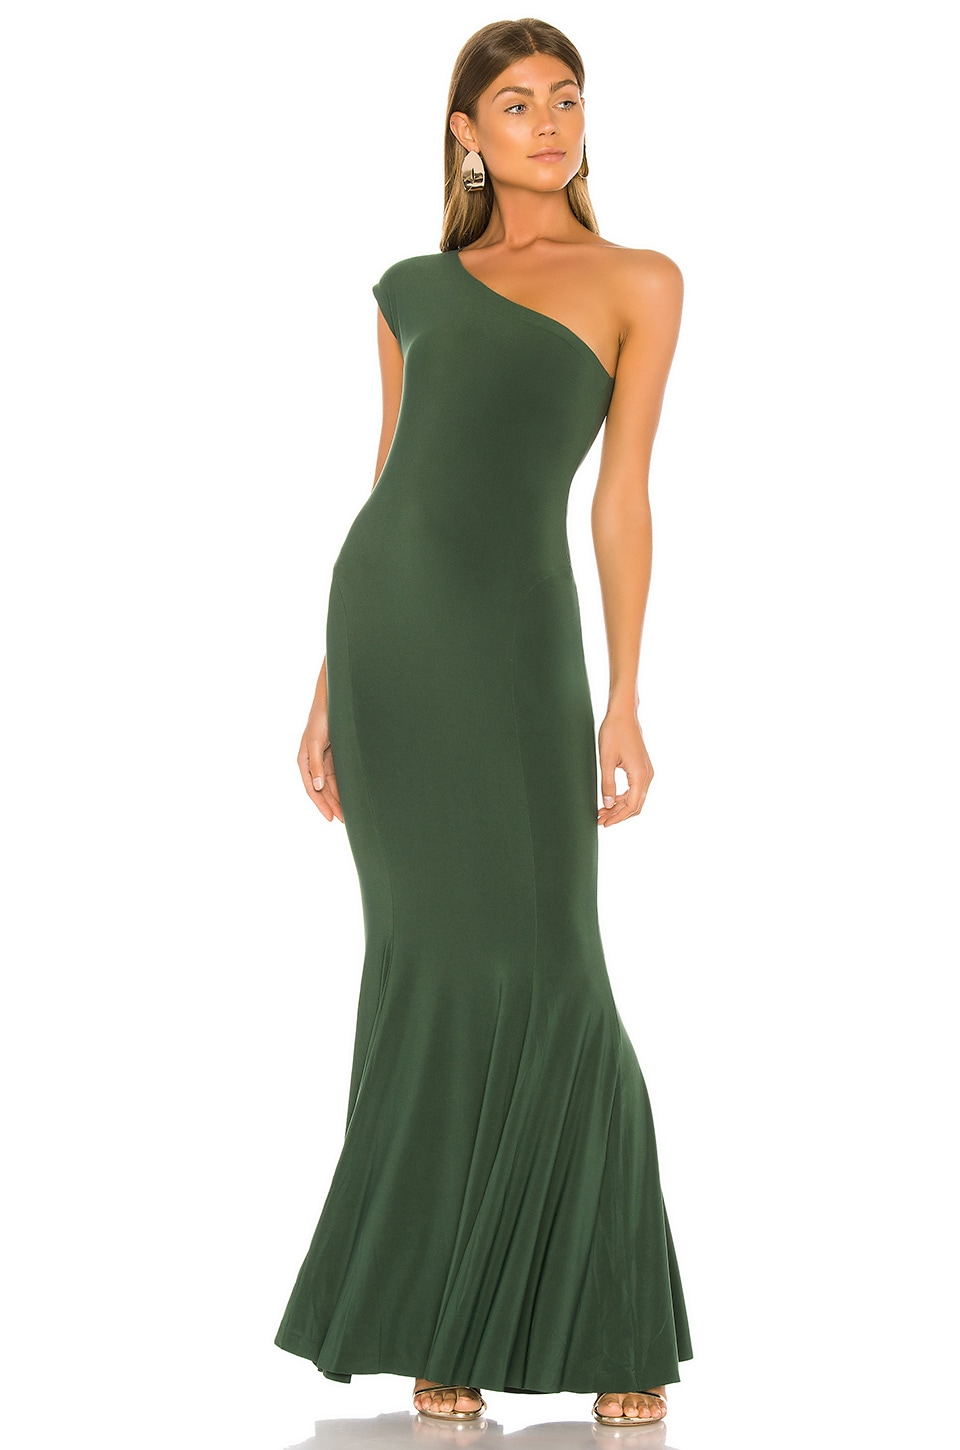 Norma Kamali One Shoulder Fishtail Gown in Forest Green